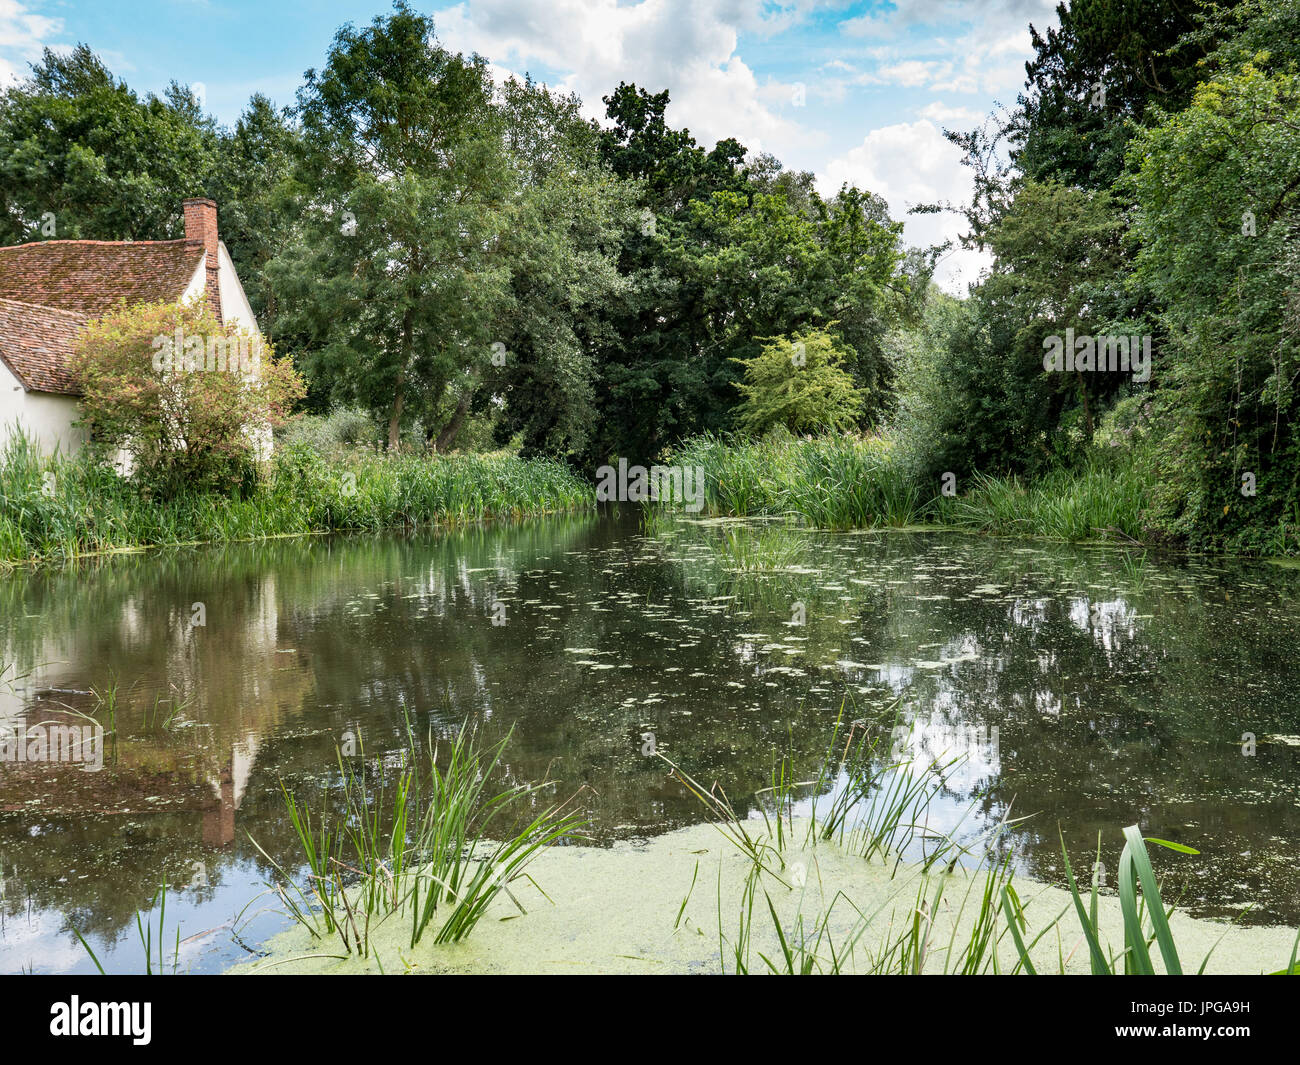 Willy Lott's cottage at Flatford Mill, as seen in the painting The Hay Wain by the artist John Constable. Suffolk, Stock Photo